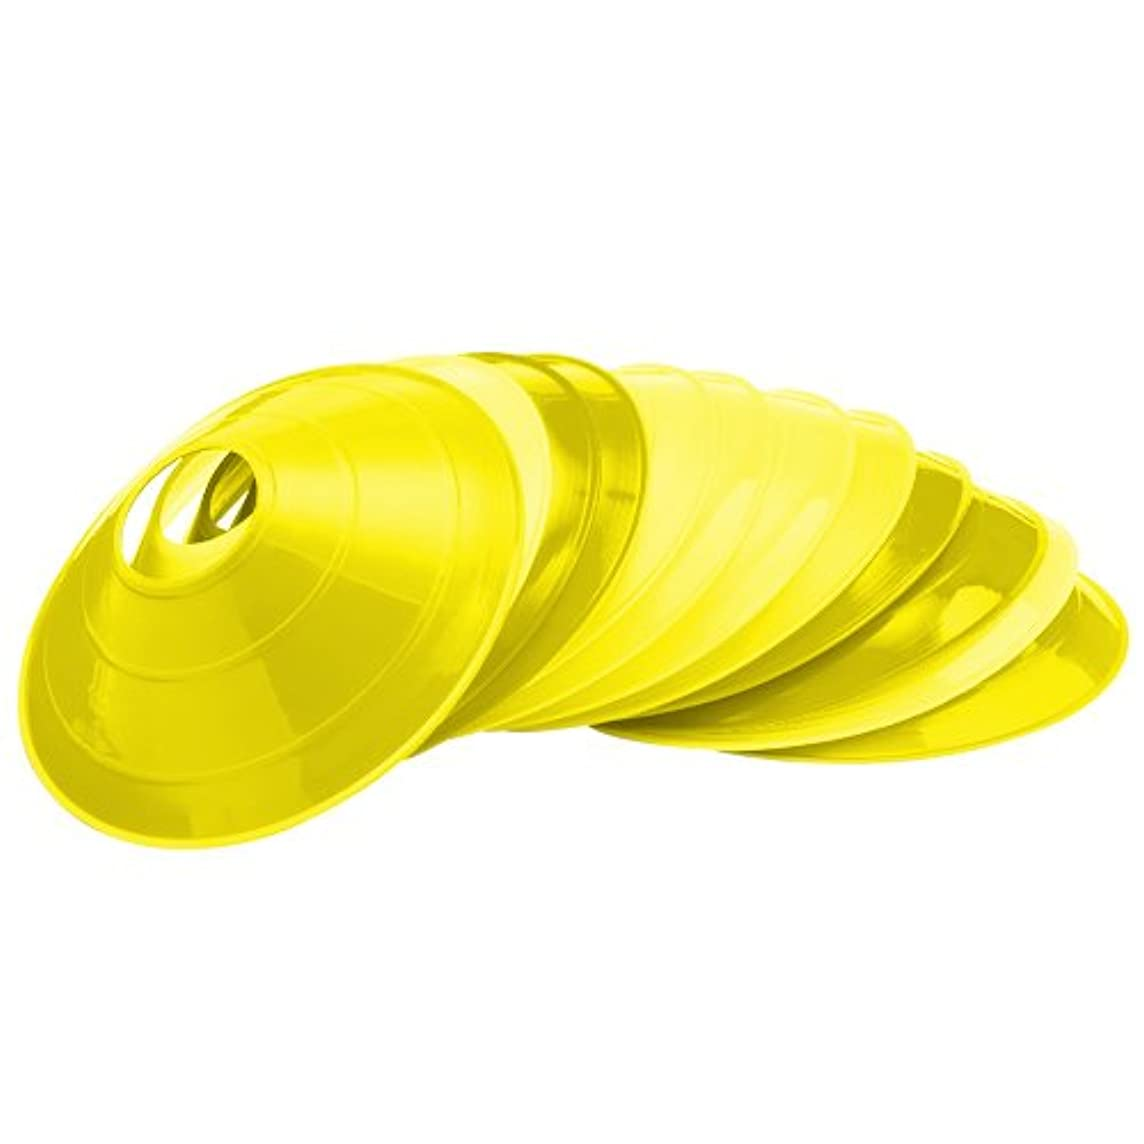 Gamecraft Yellow Low Profile Cones